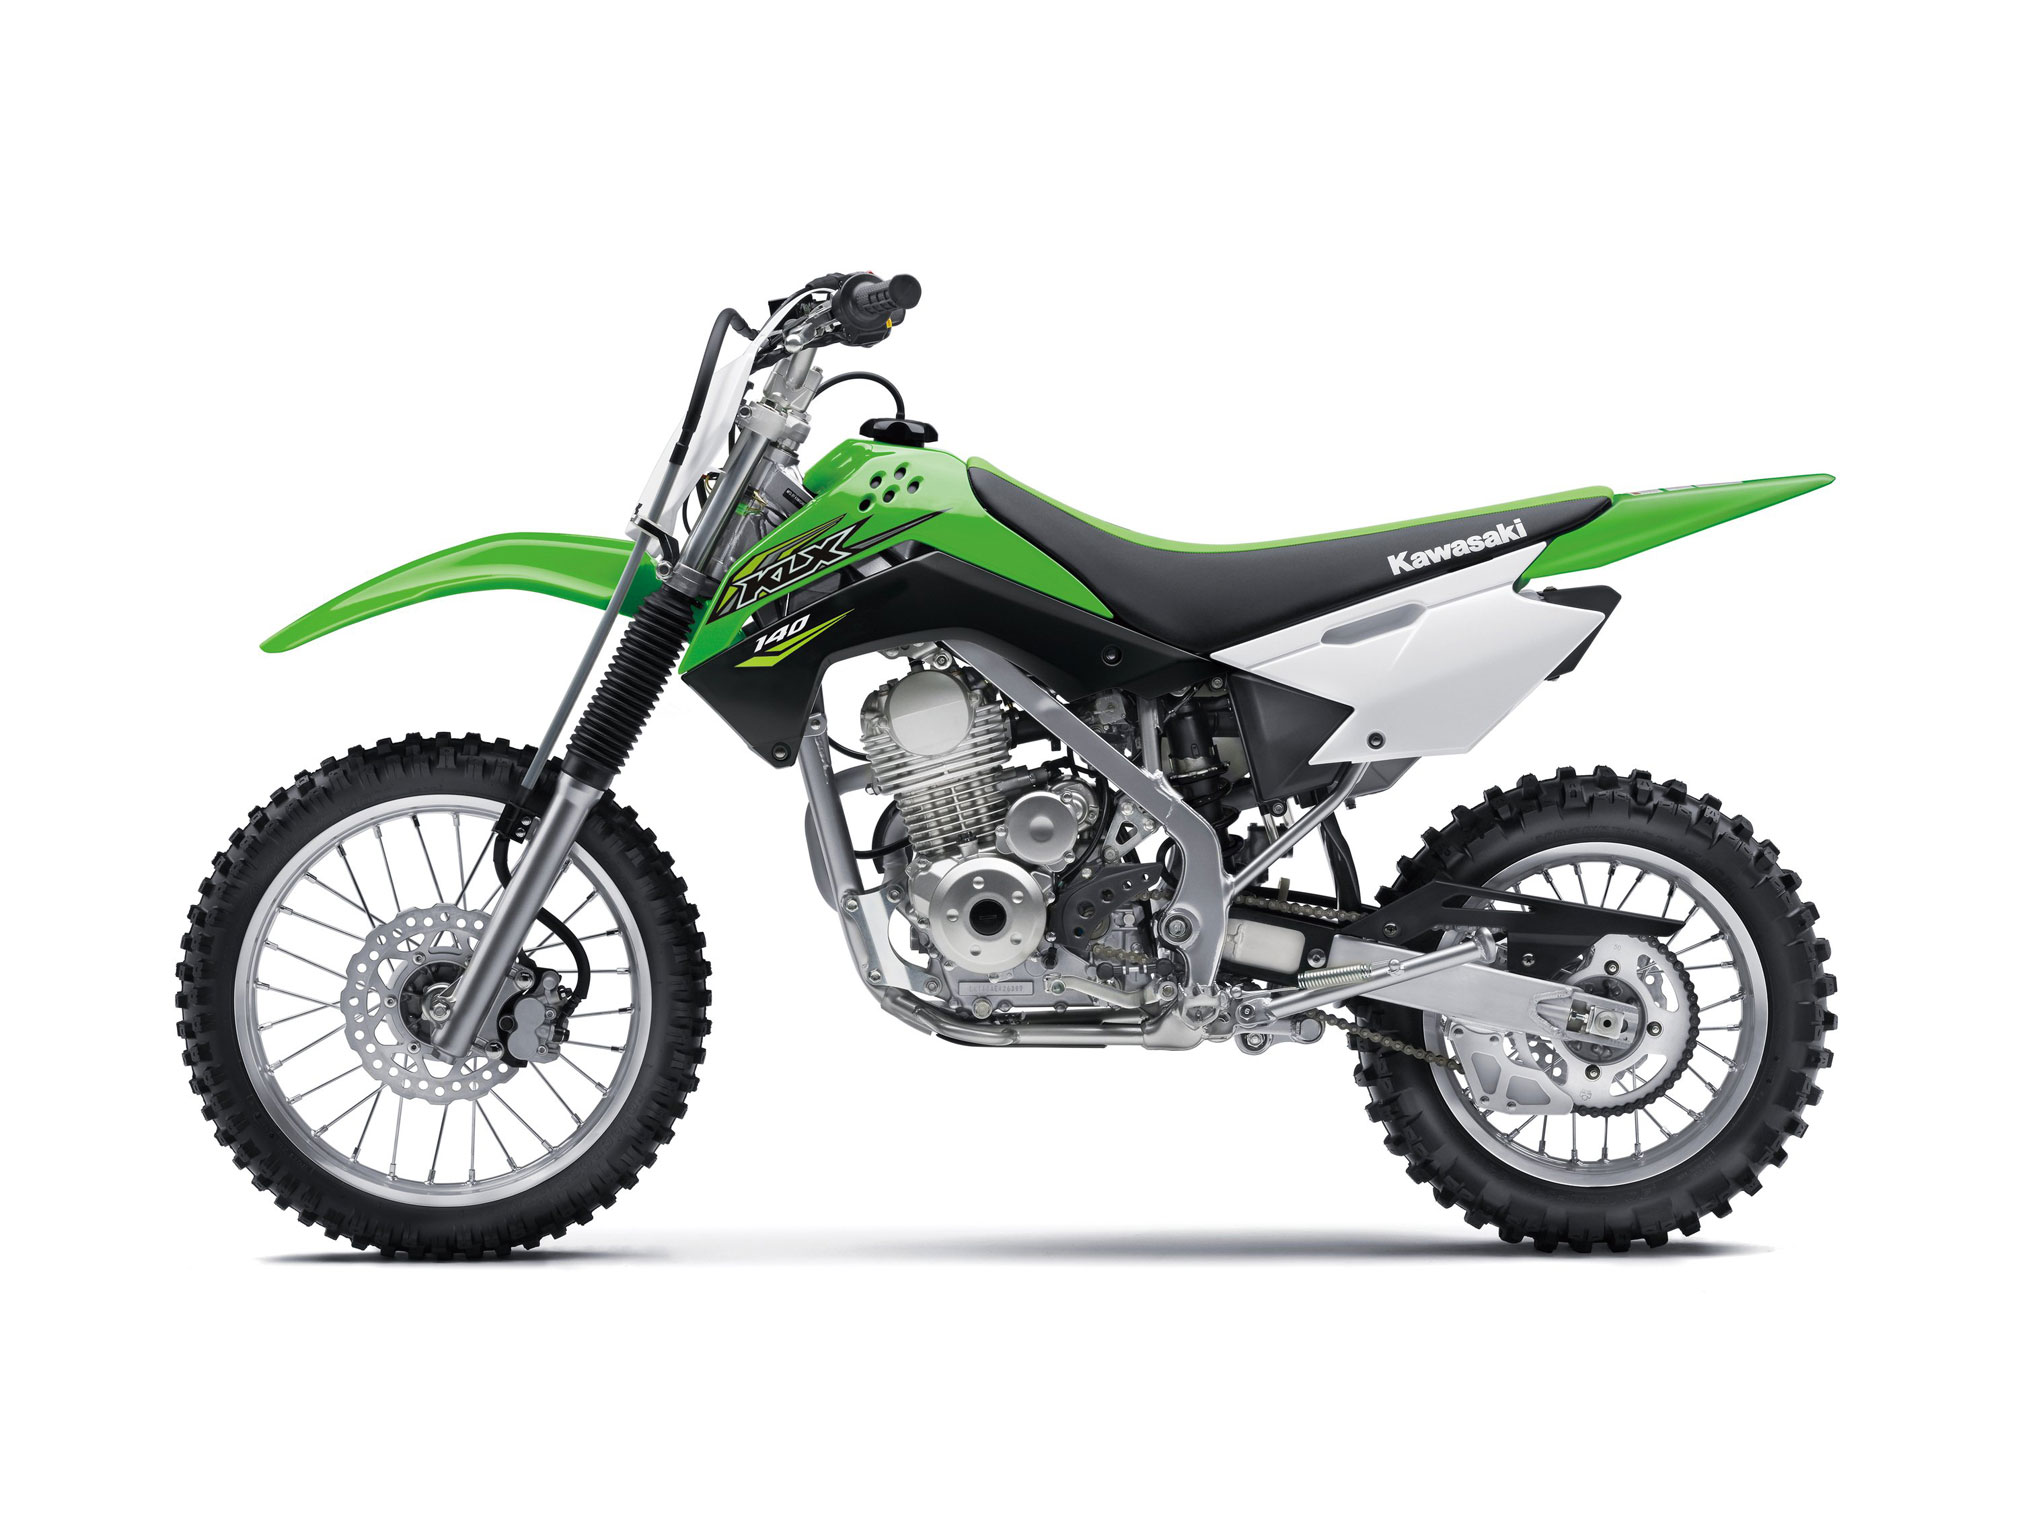 2018 Kawasaki KLX140 Review - TotalMotorcycle